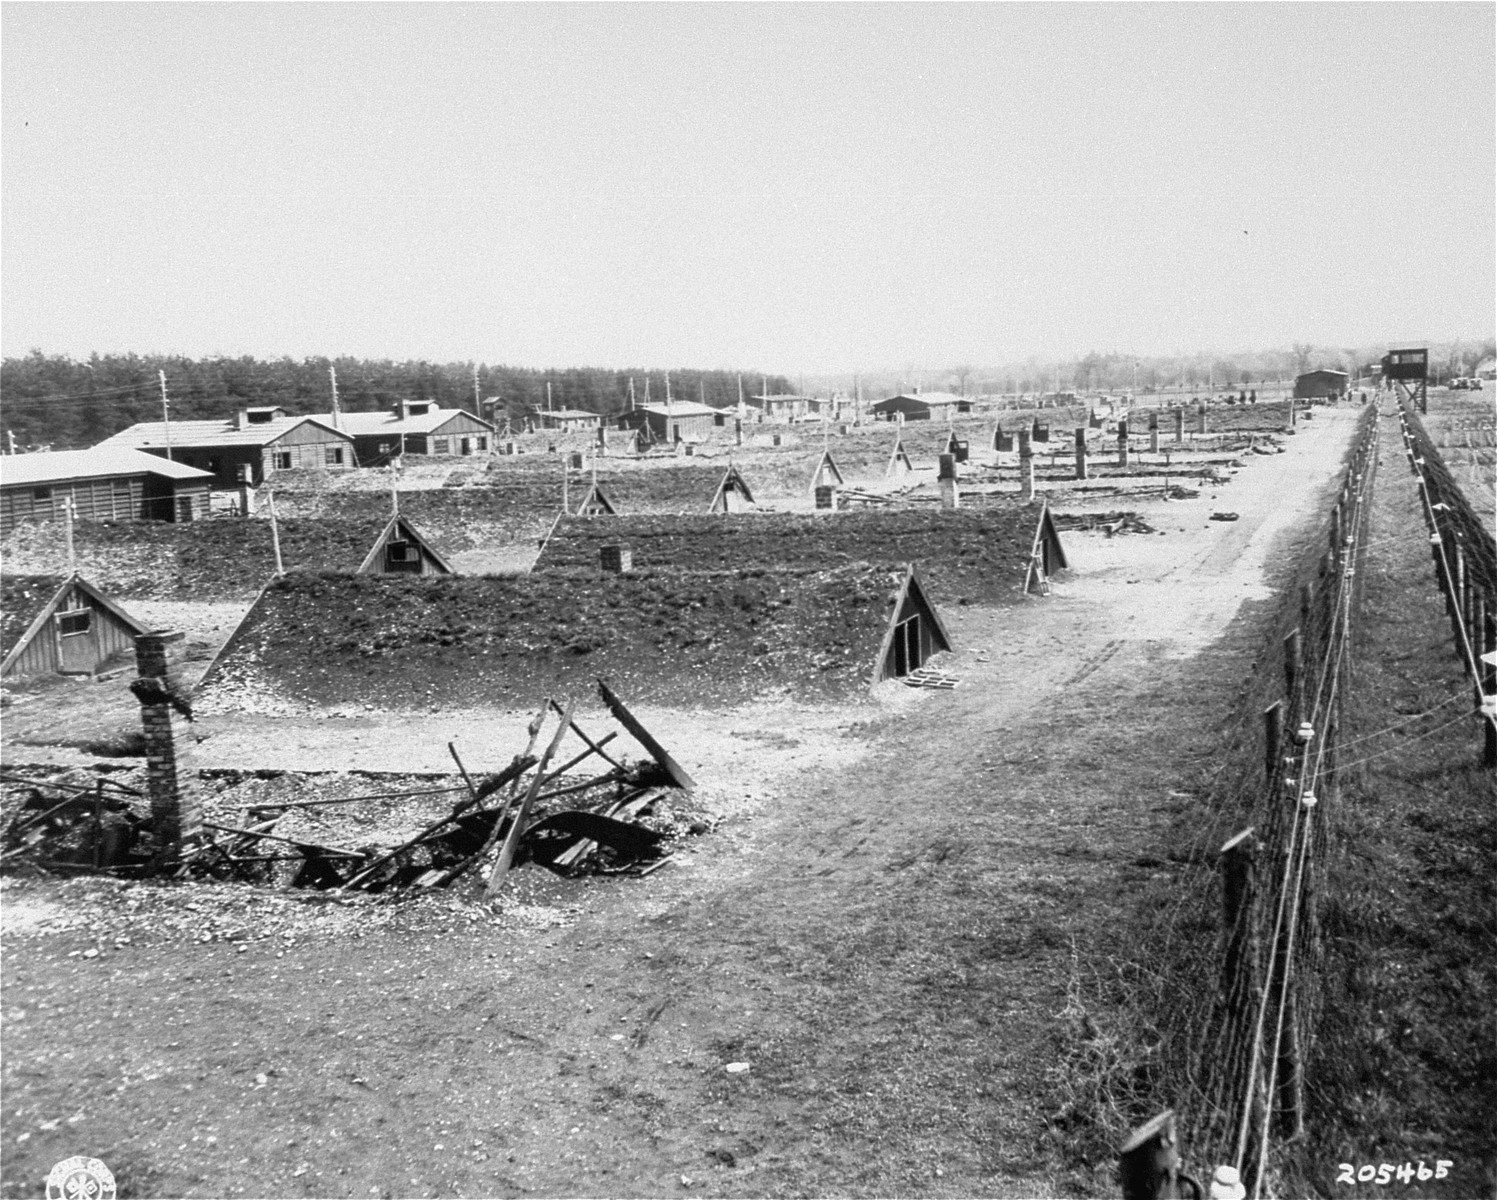 The Kaufering IV concentration camp.